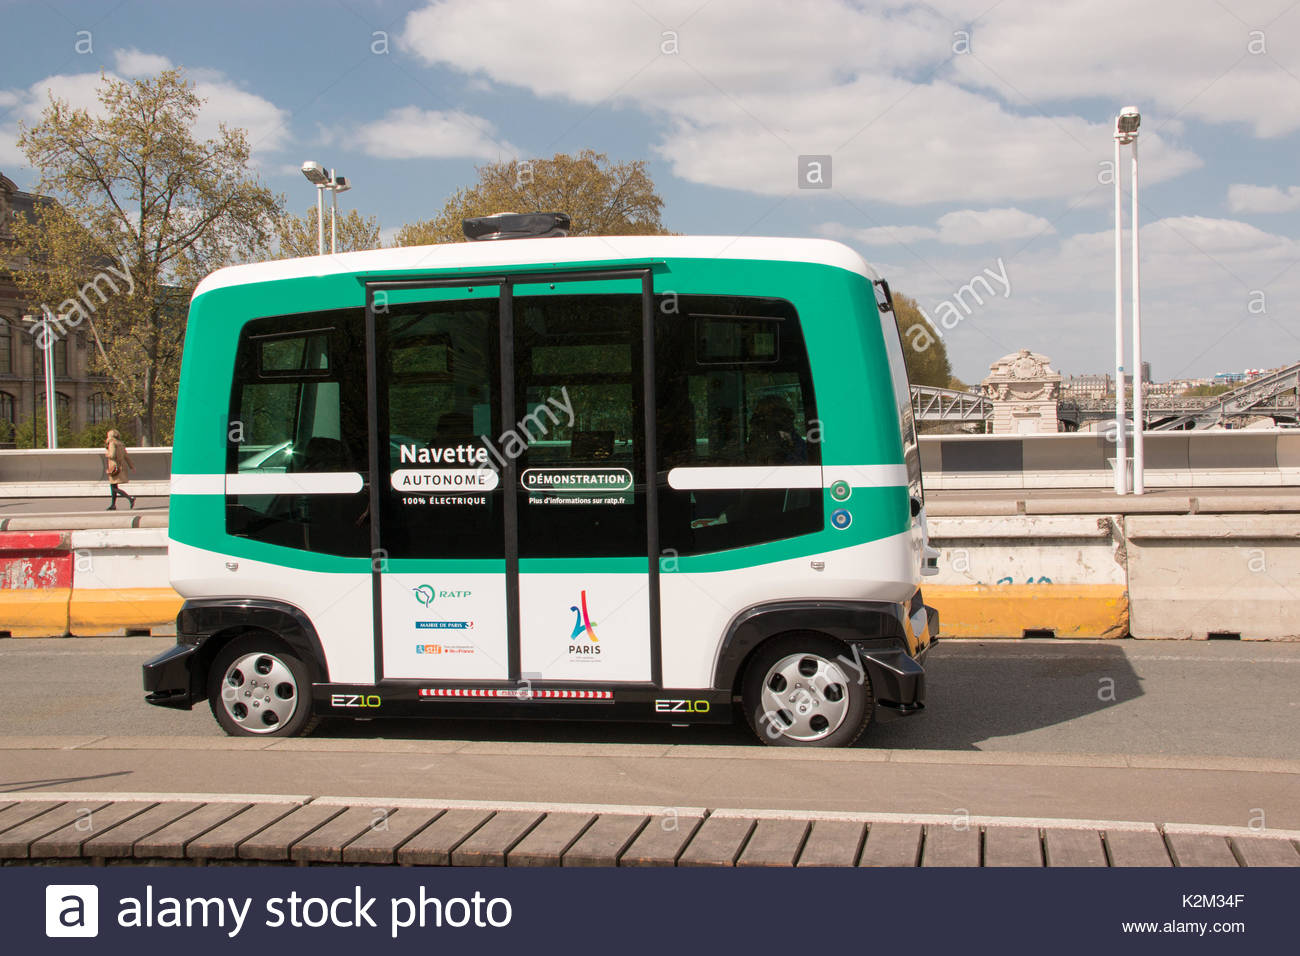 Experimentation of an autonomous electric vehicle in Paris on 6 April 2017 by the RATP group. - Stock Image